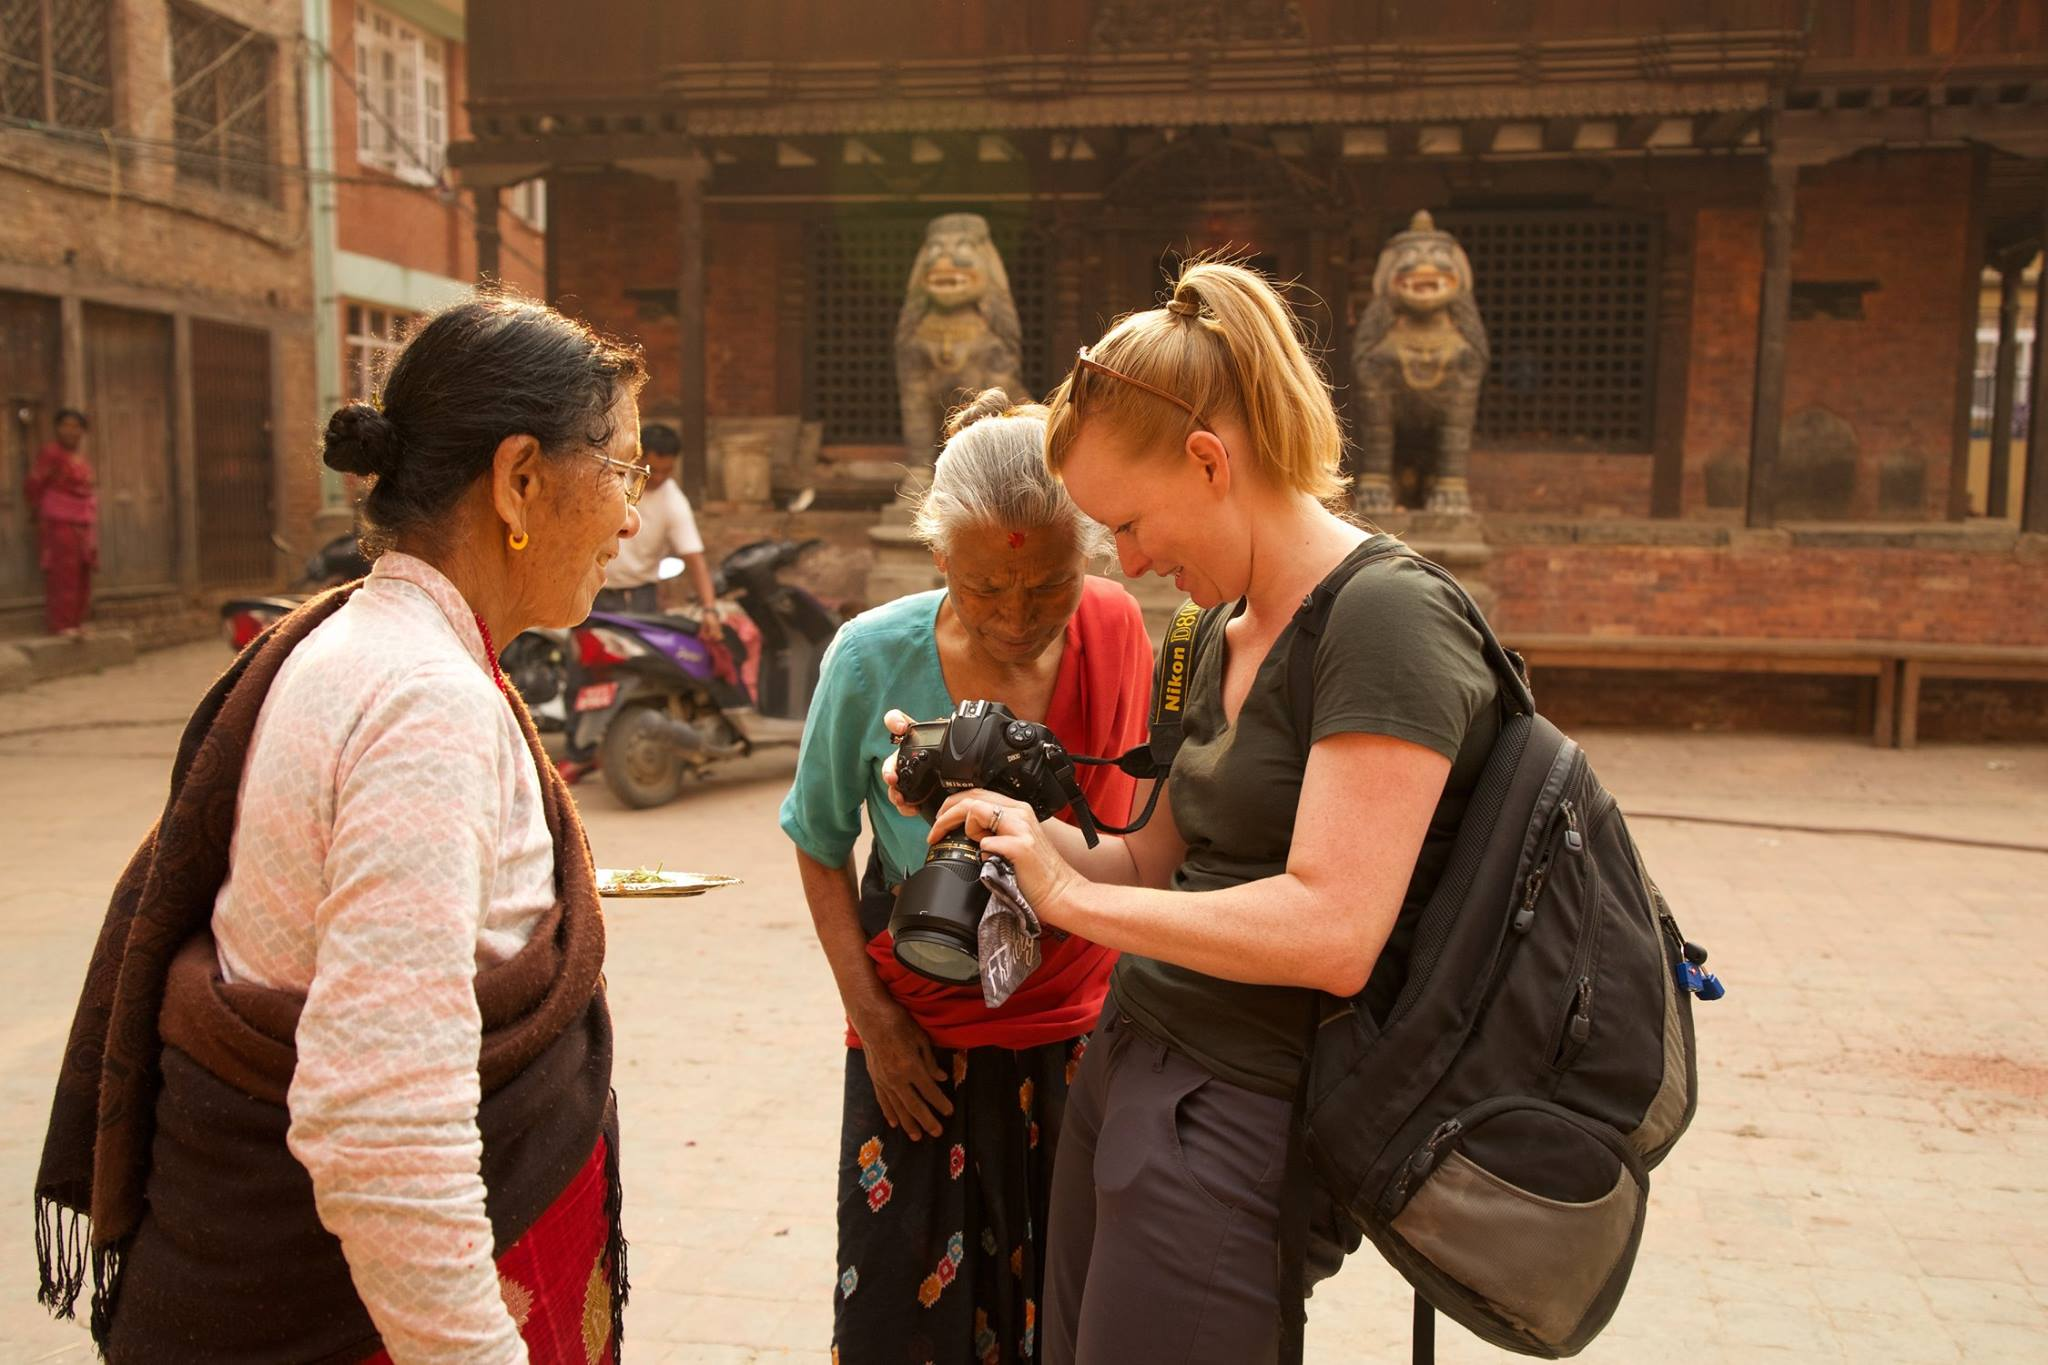 Pictured here, photographer and filmmaker Crystaline Randazzo at one of her photo outings in Kathmandu, Nepal. Photo credit ©Monique Kovacs Nathan